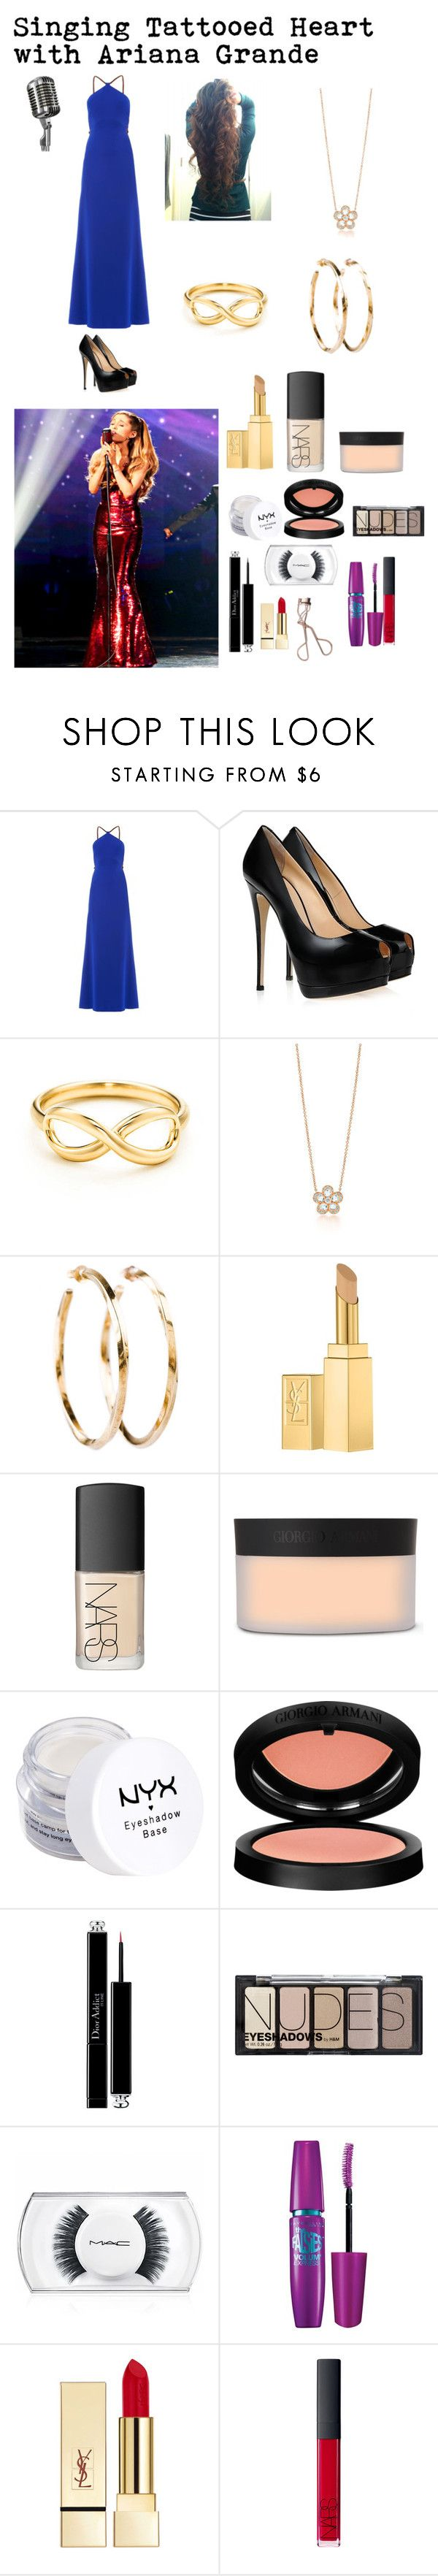 """Singing Tattooed Heart with Ariana Grande"" by famouslife13 ❤ liked on Polyvore featuring Diane Von Furstenberg, Giuseppe Zanotti, Tiffany & Co., Yves Saint Laurent, NARS Cosmetics, Giorgio Armani, NYX, Christian Dior, H&M and MAC Cosmetics"